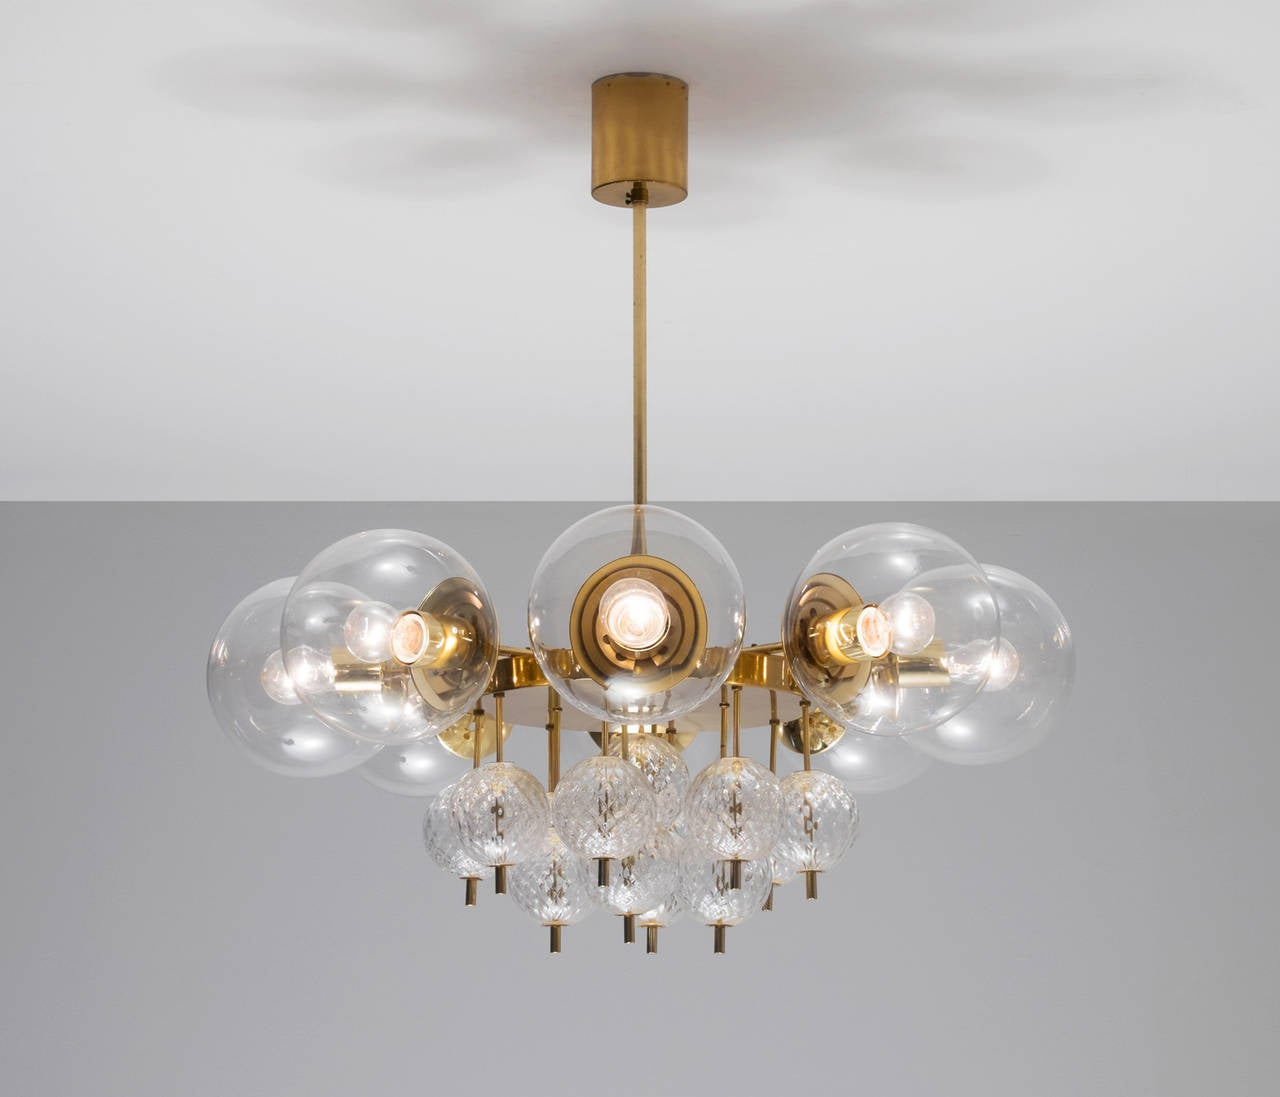 Large chandeliers with brass and glass bulbs for sale at 1stdibs large chandeliers with brass and glass bulbs 2 arubaitofo Image collections